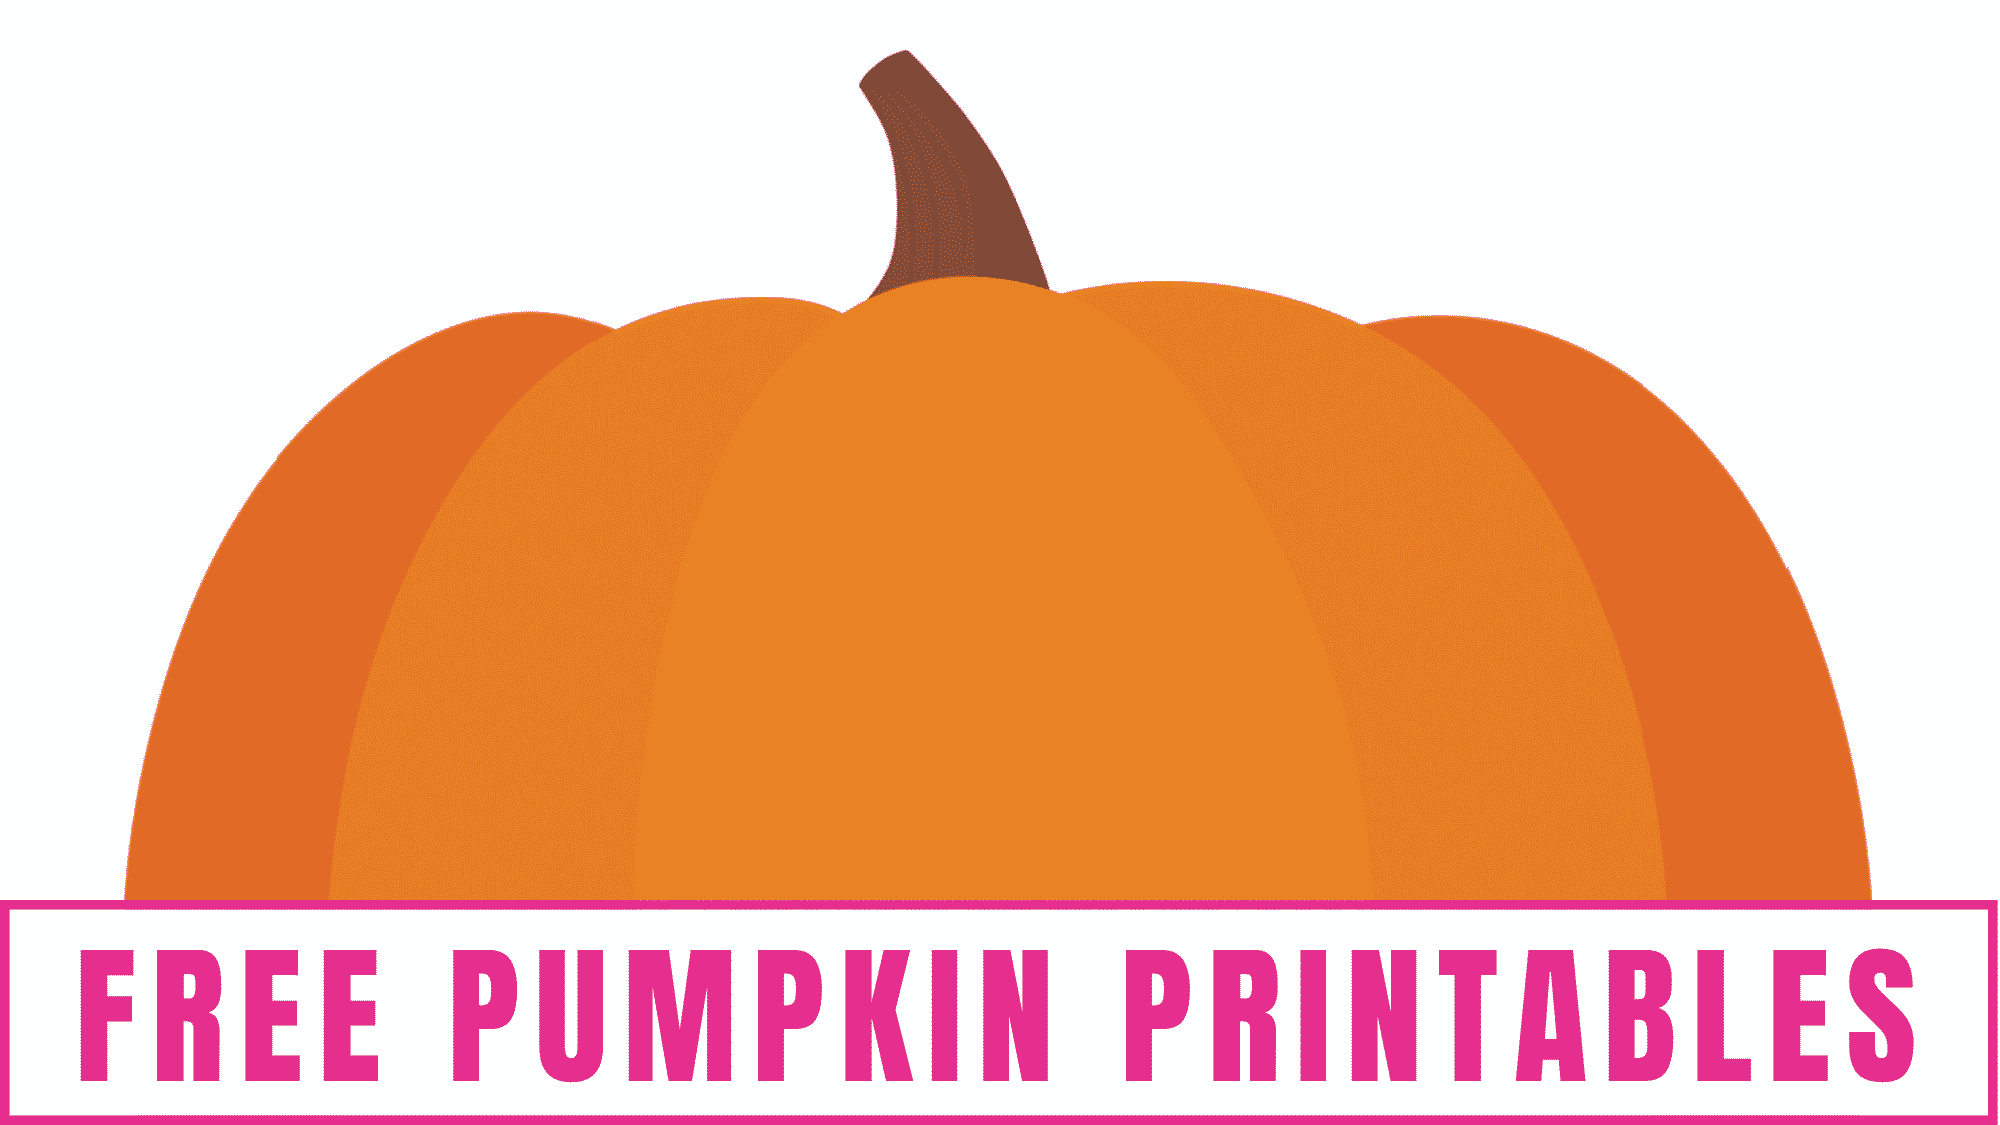 These free pumpkin printables can be used in Thanksgiving and Halloween crafts, as Thanksgiving and Halloween decorations, as Thanksgiving and Halloween coloring pages and much more!